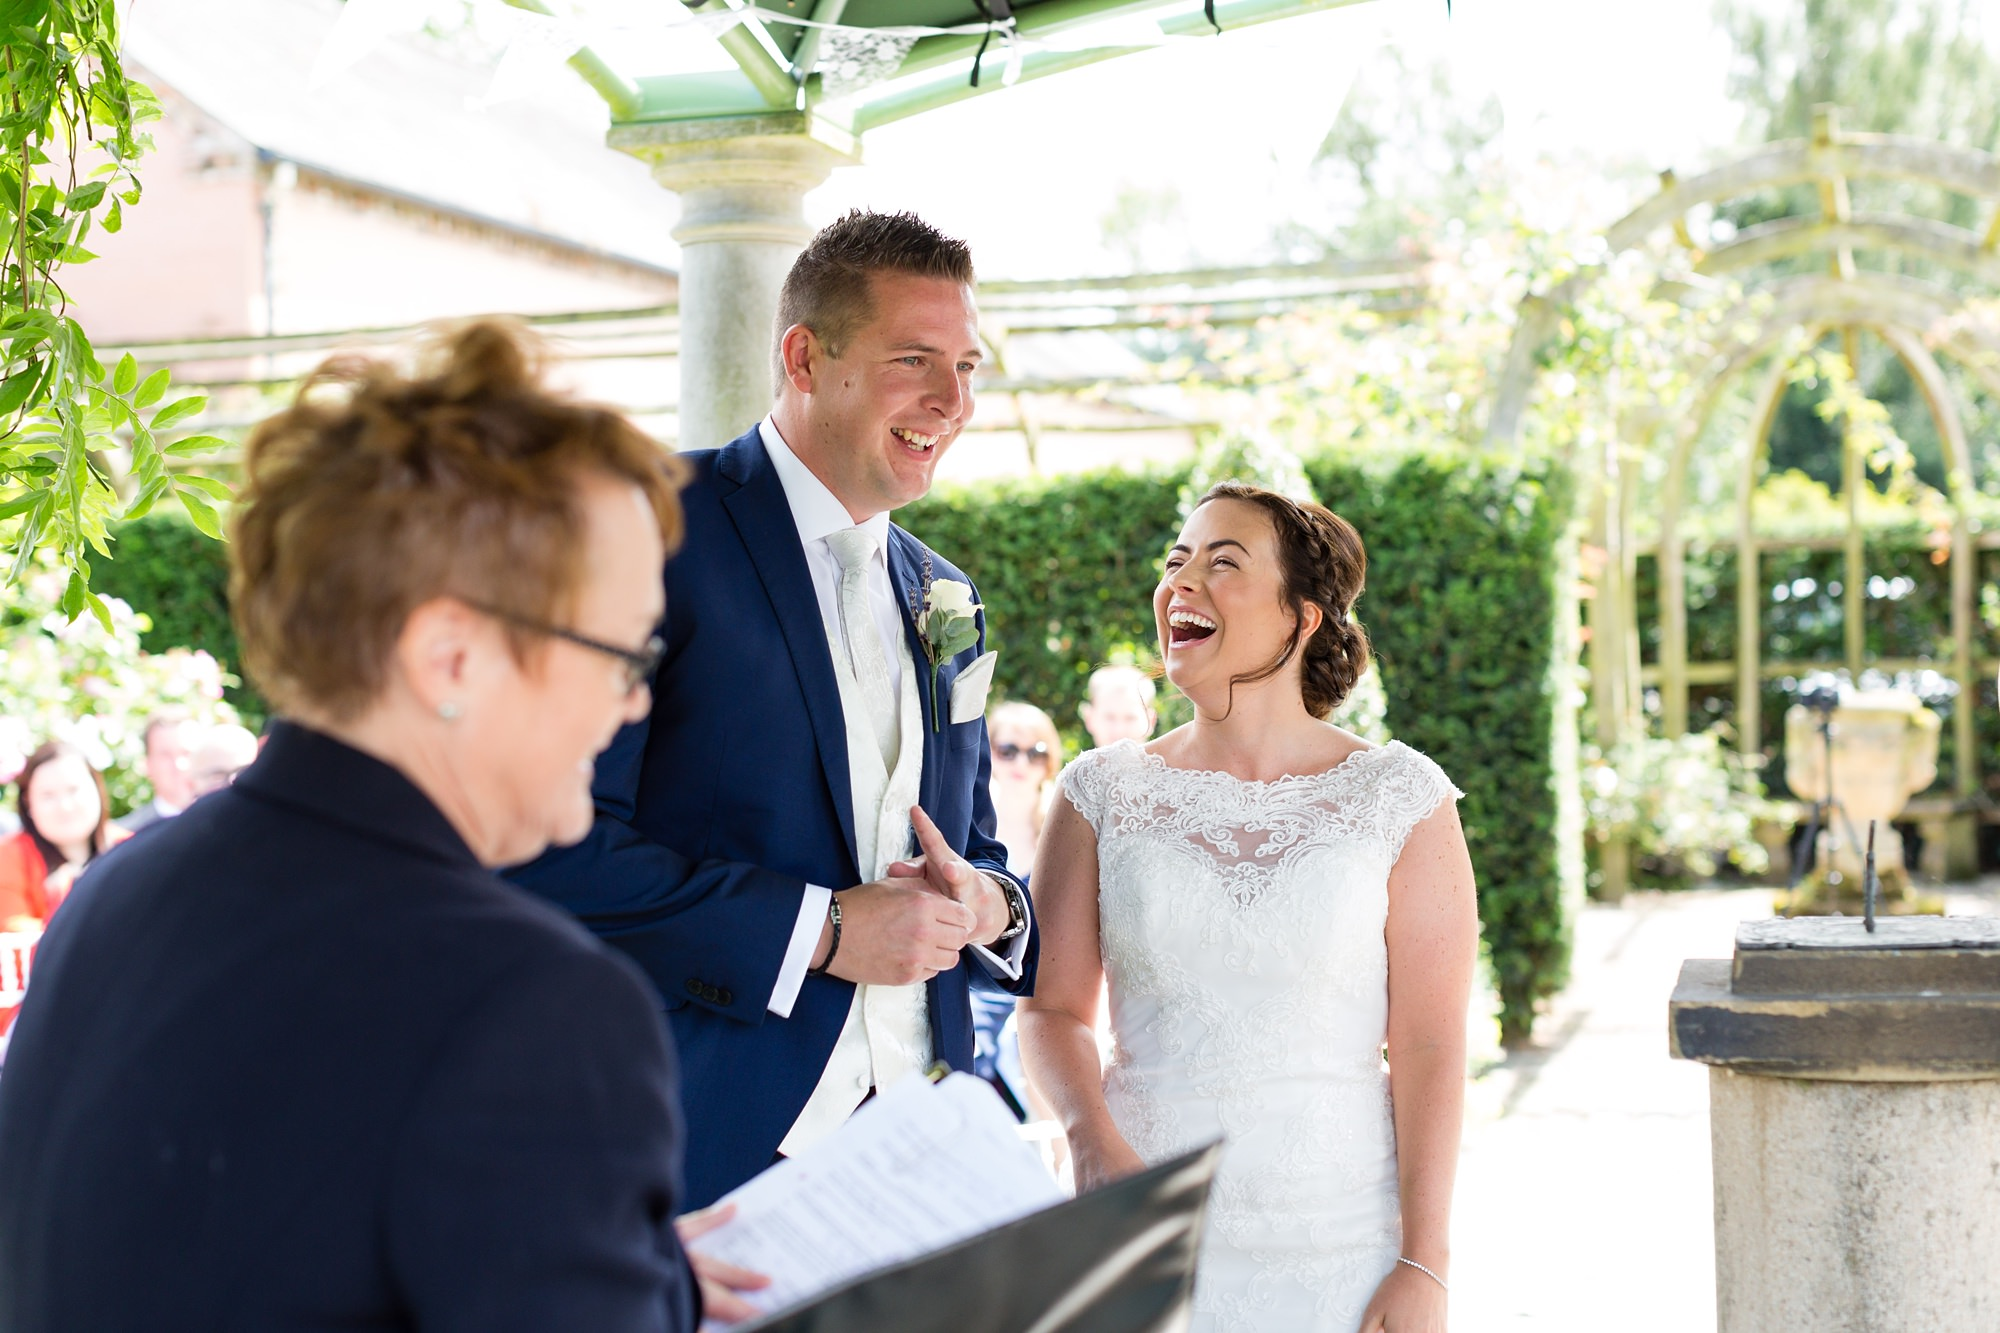 Bell Hall Wedding Photography bride laughing during outdoor wedding ceremony